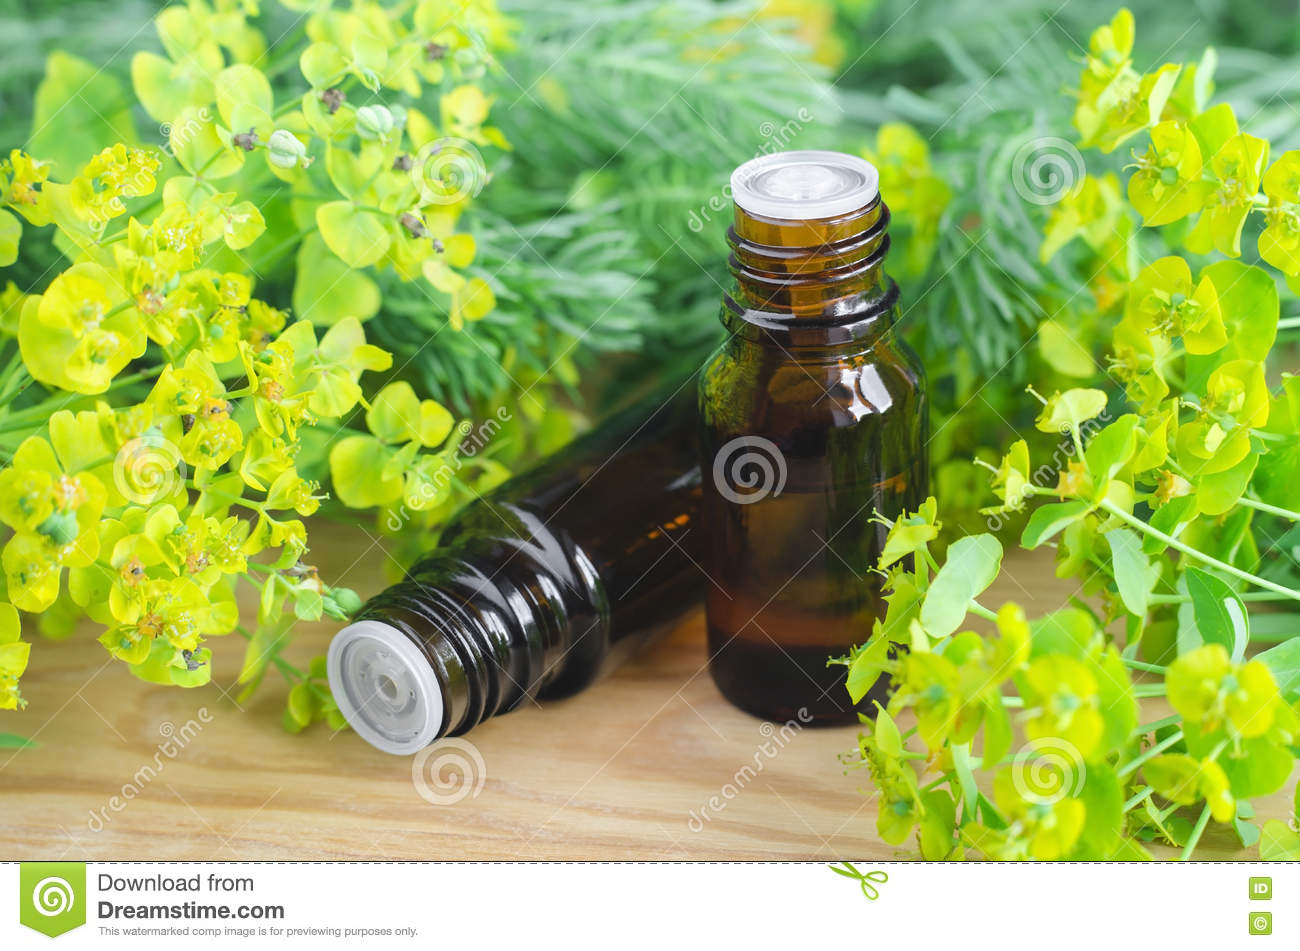 Two Bottles Of Euphorbia Cyparissias, Cypress Spurge Extract.